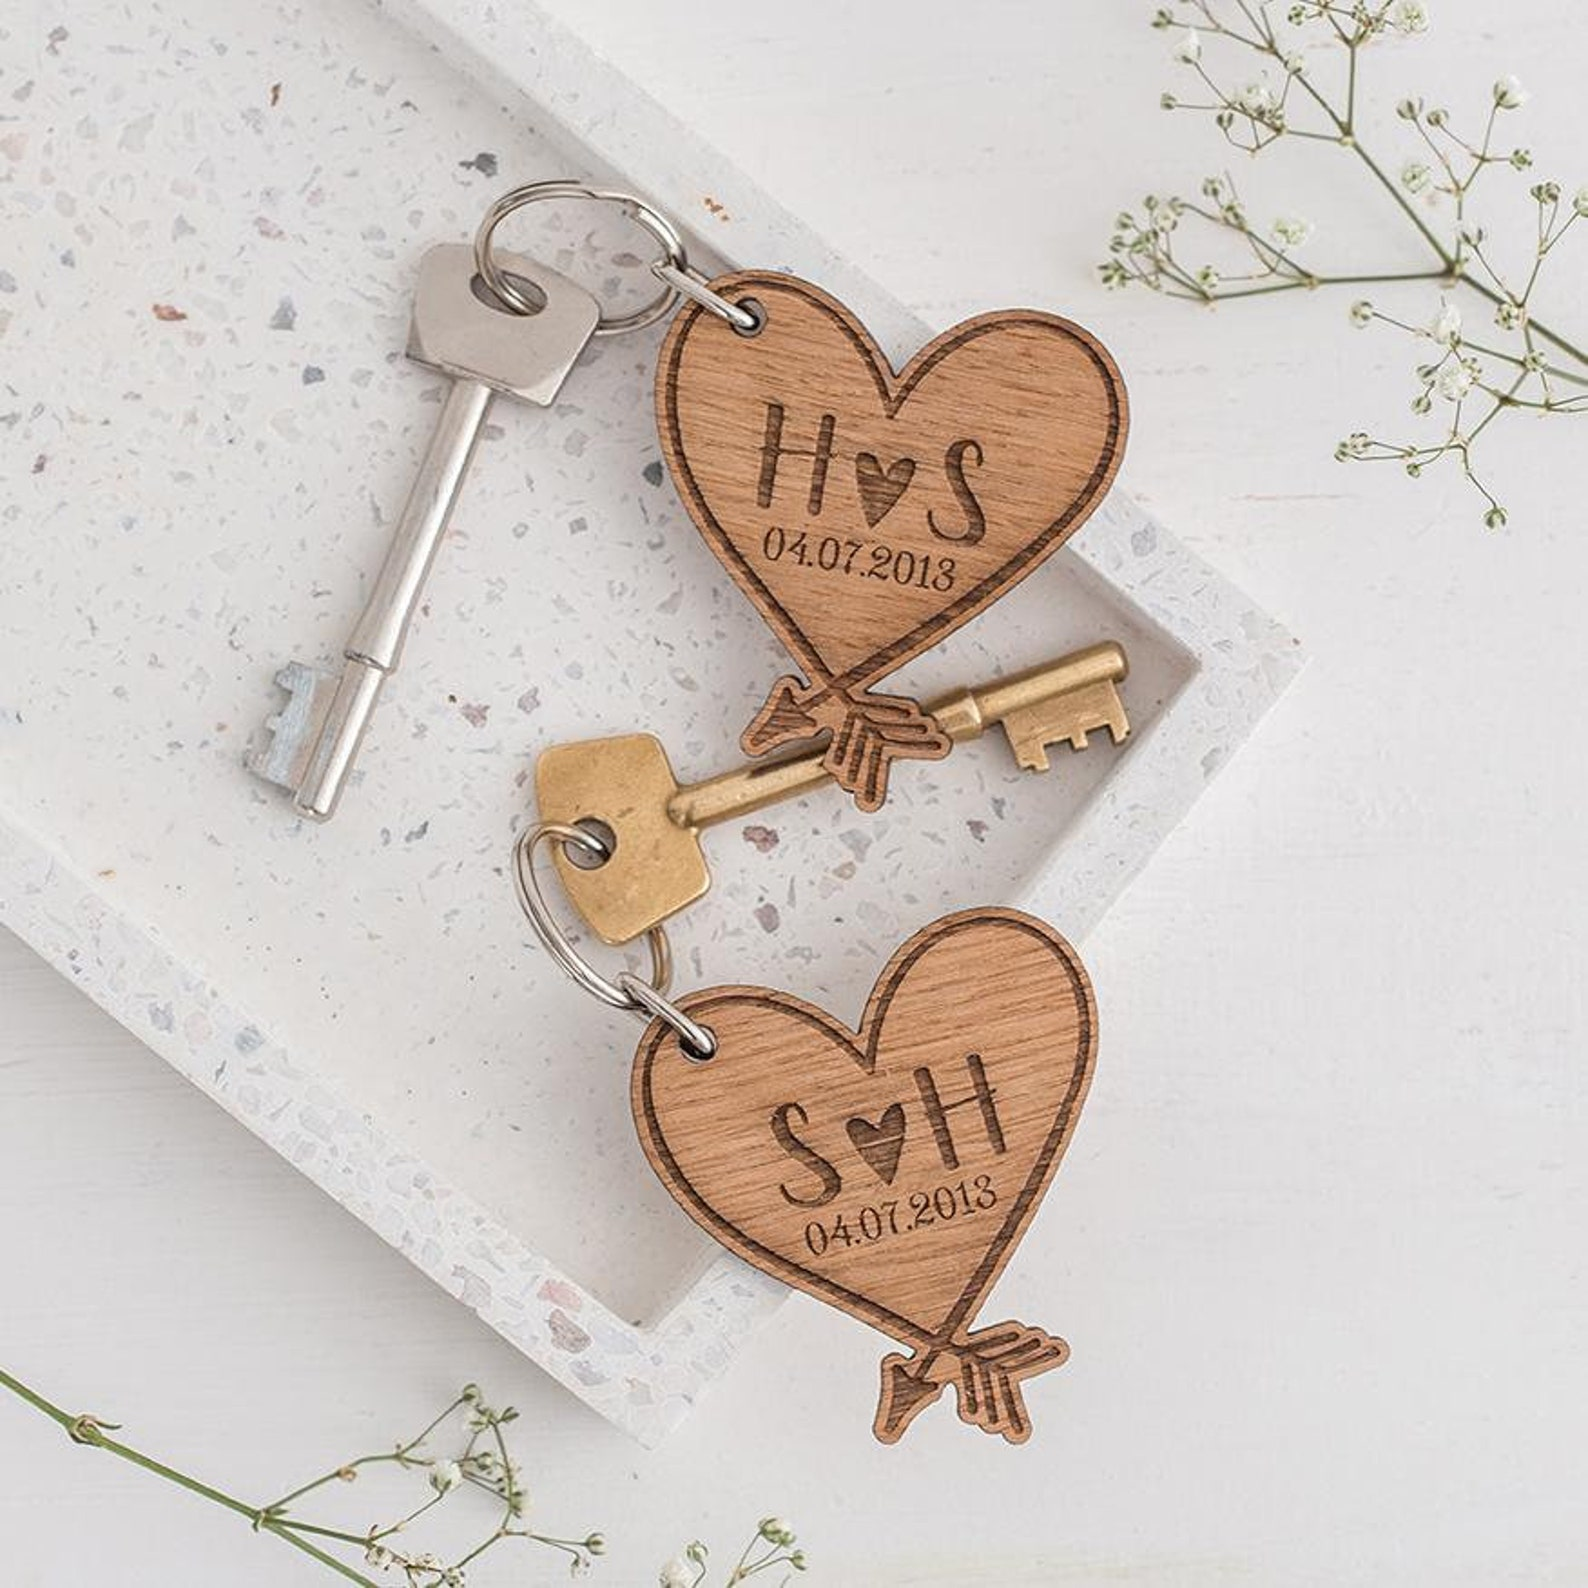 Wooden heart keychains